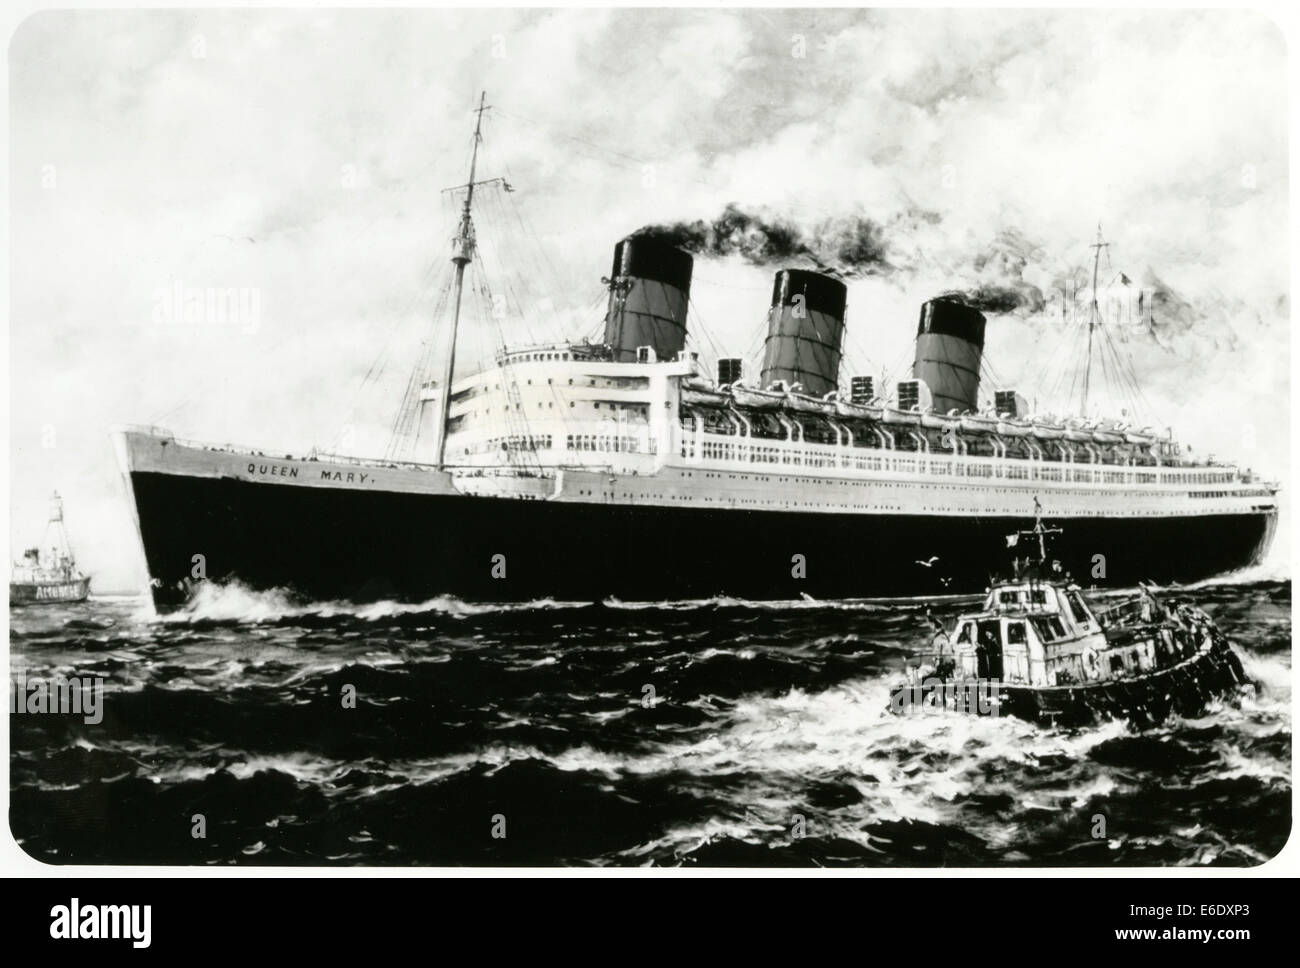 Cunard-White Star Line Ocean Liner, Queen Mary, photo from Painting of Maiden Voyage by Artist Jack Gray - Stock Image